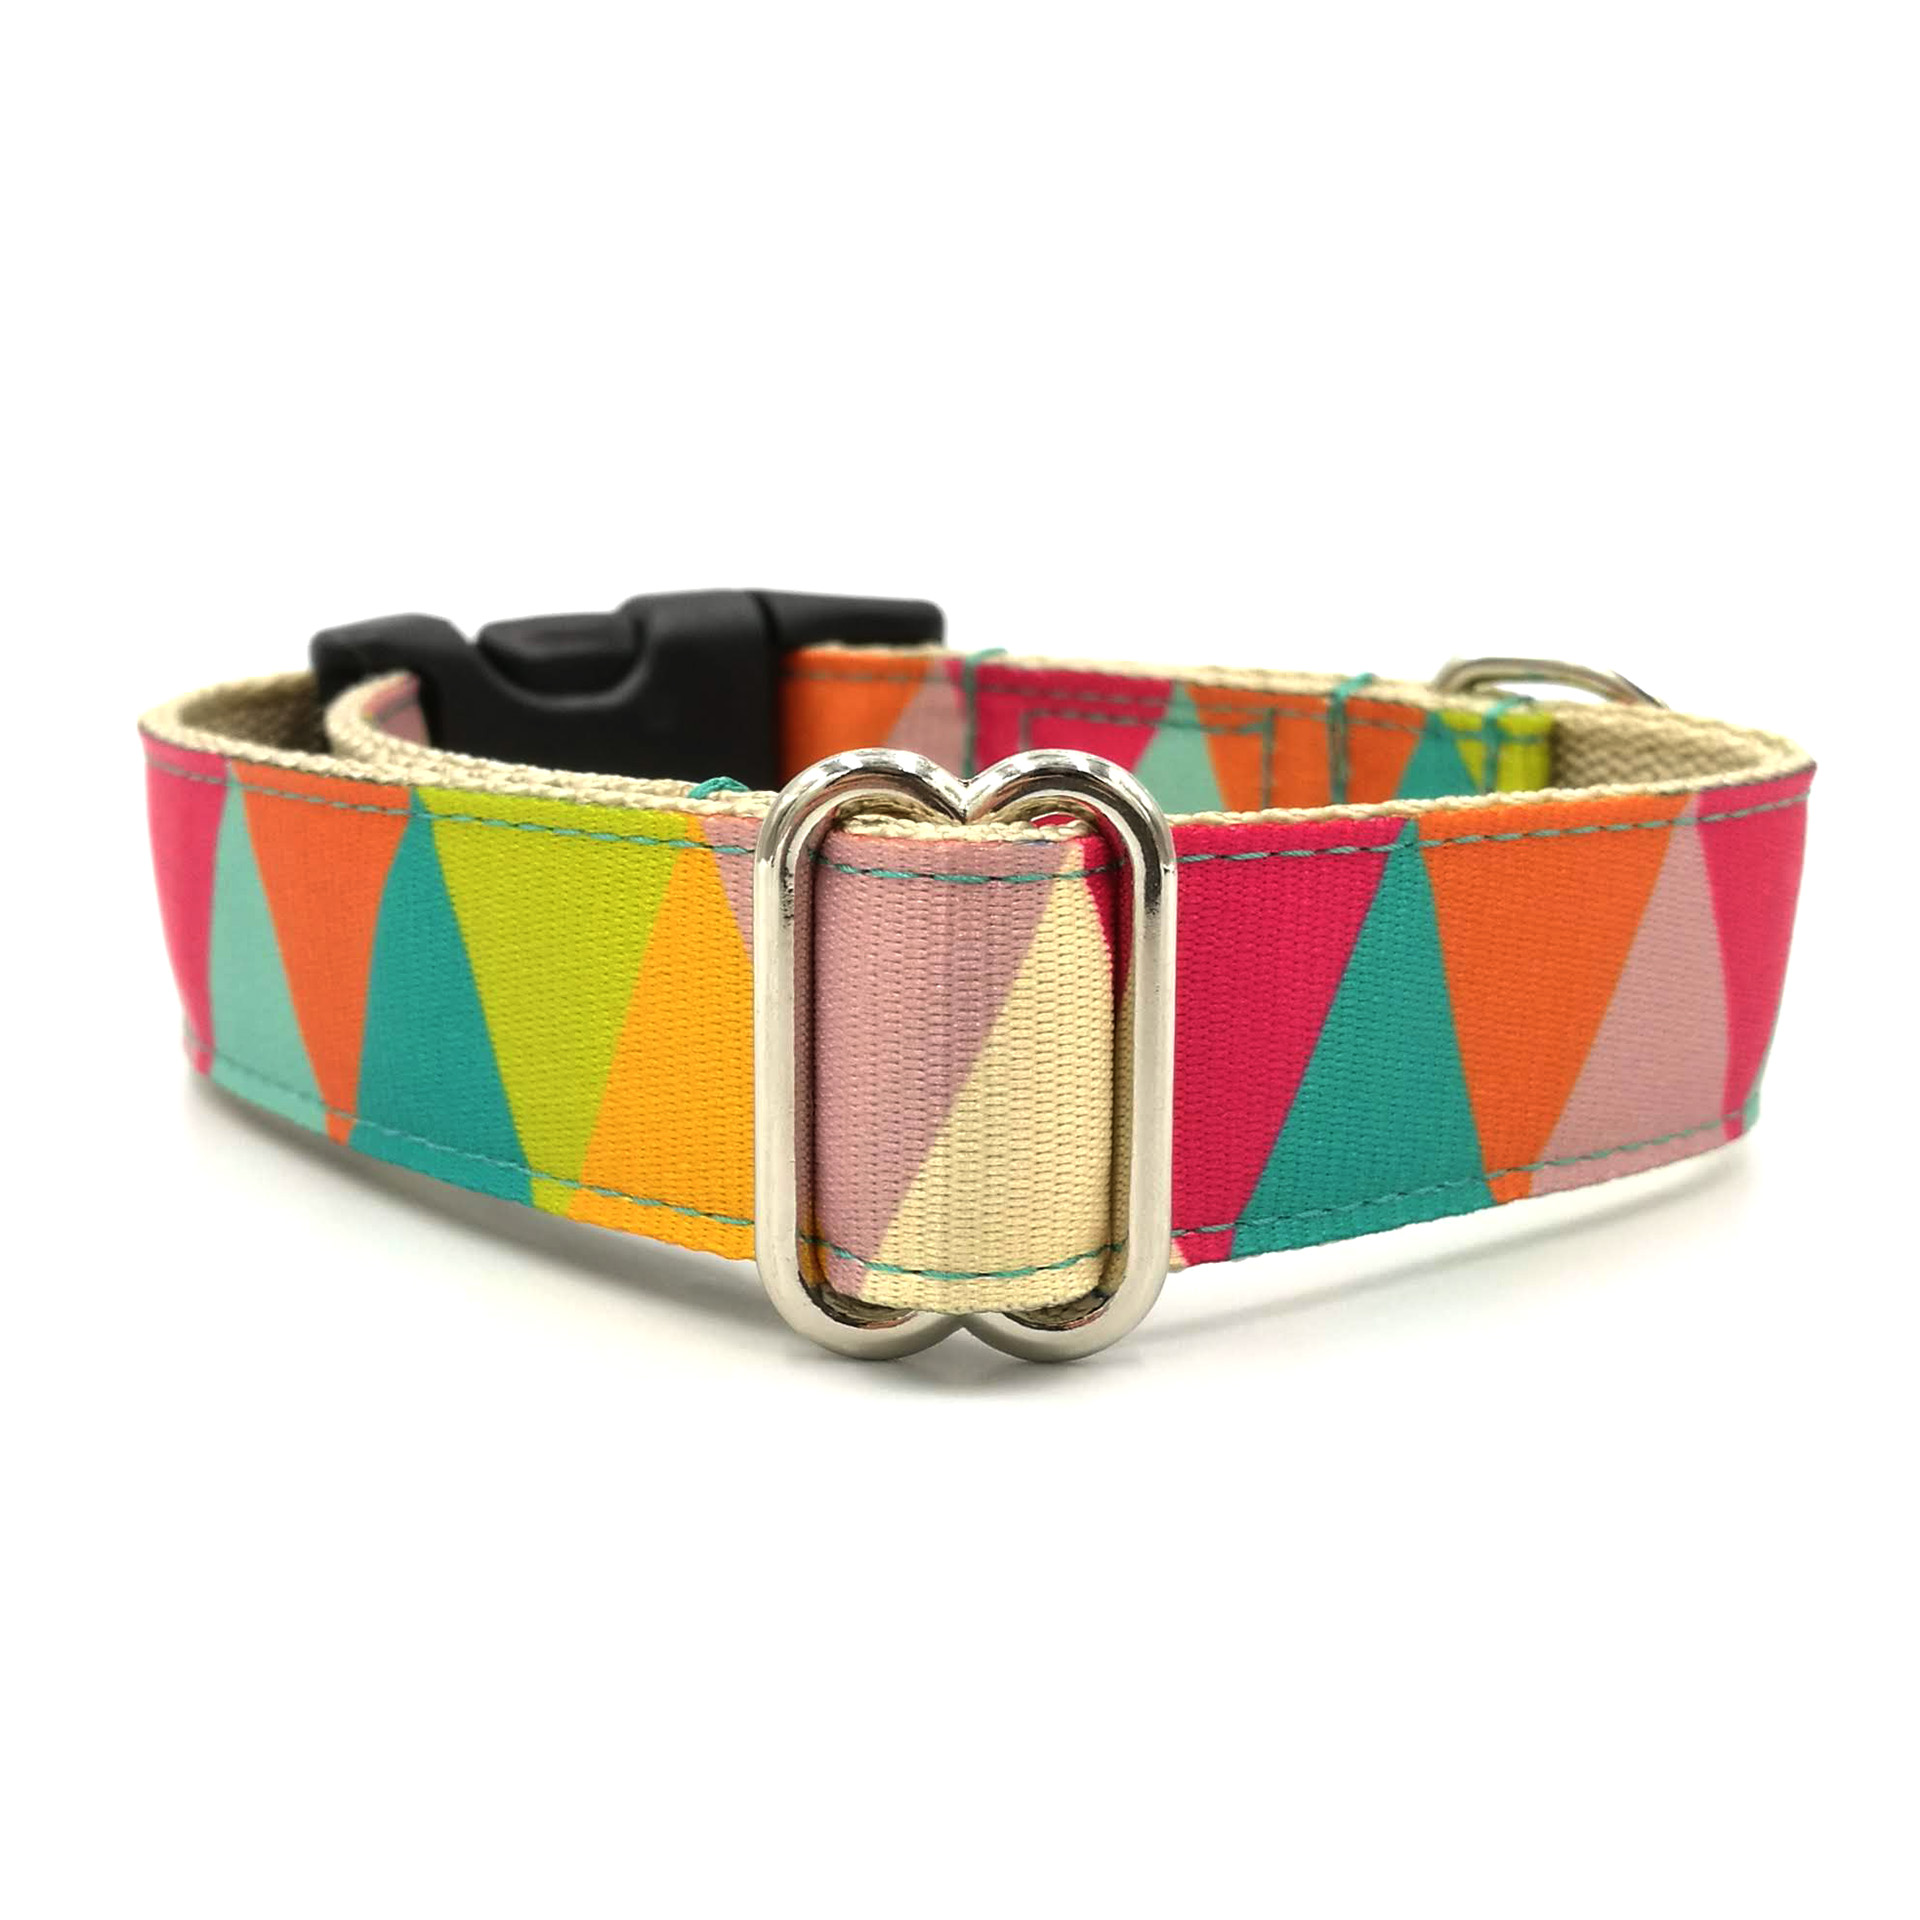 Zigzag girl dog collar